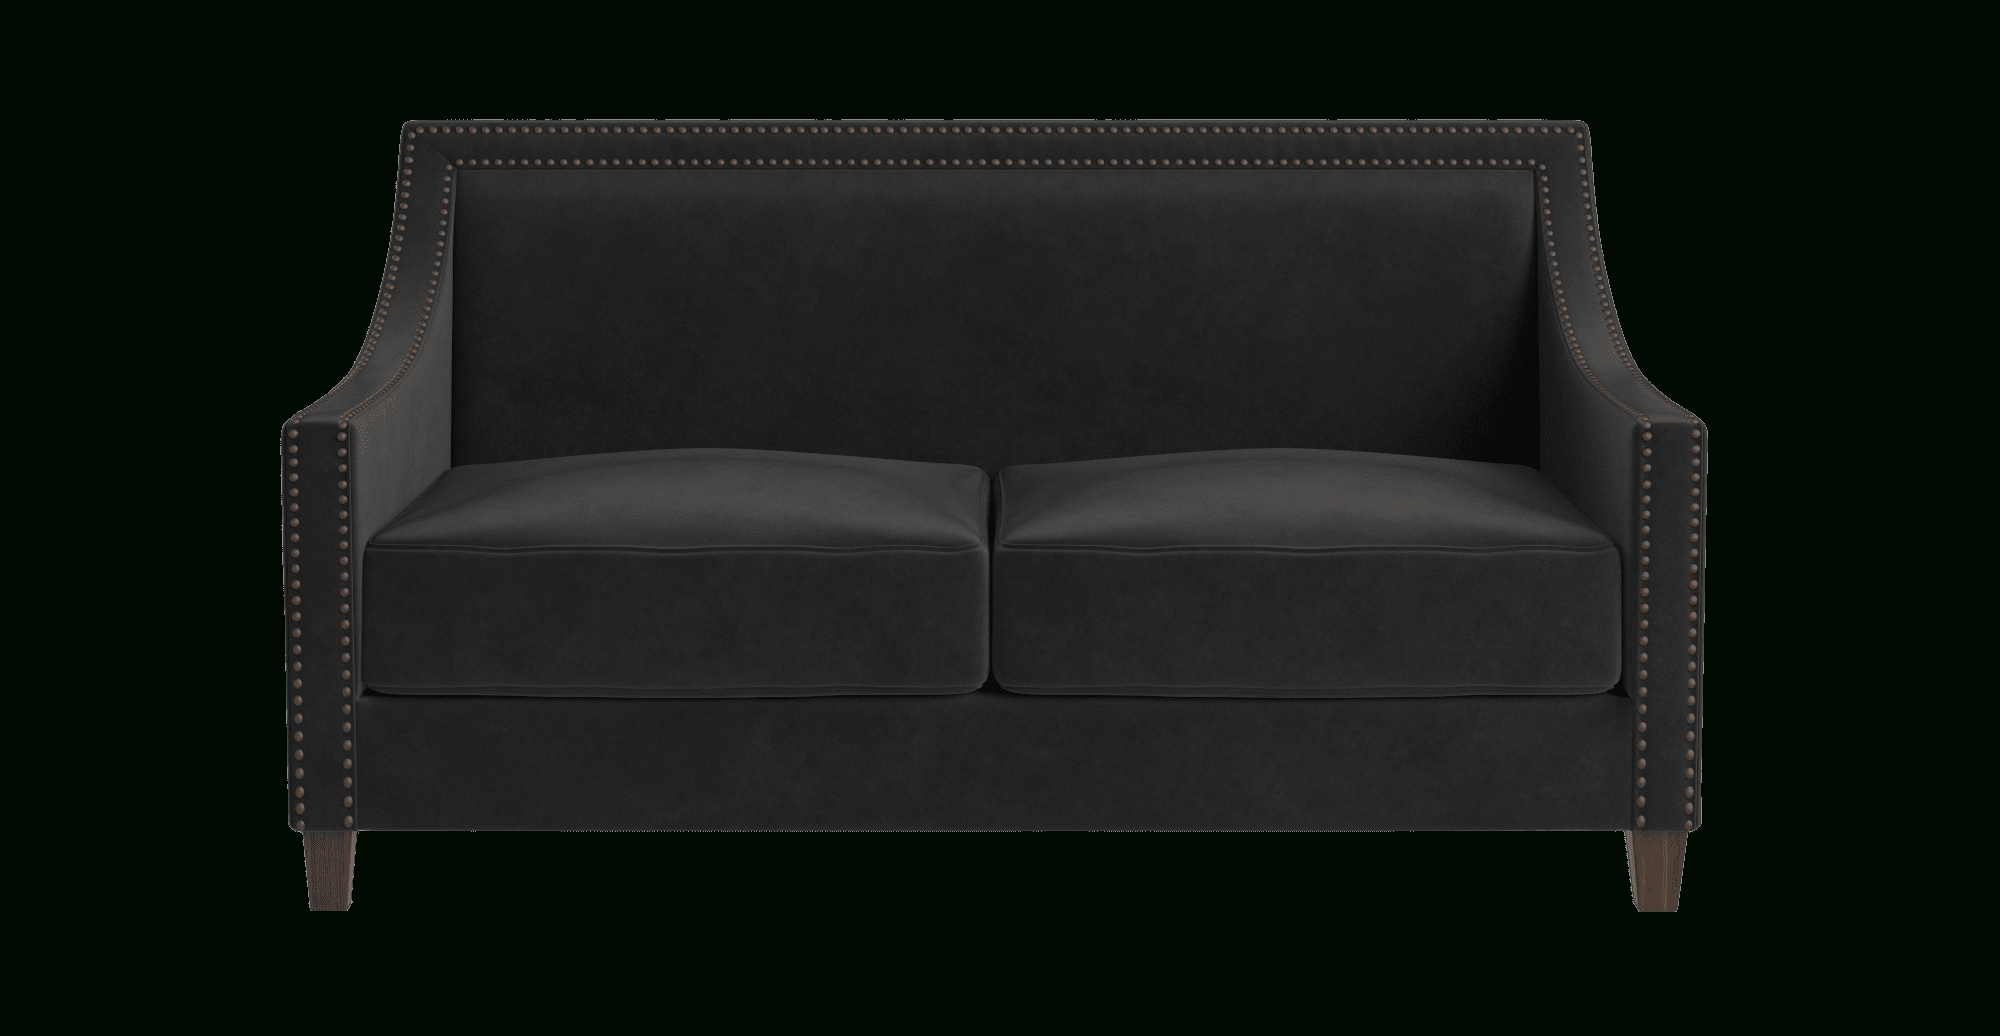 Buy Dianna 2 Seater Sofa Online - Brosa with regard to Black 2 Seater Sofas (Image 8 of 30)